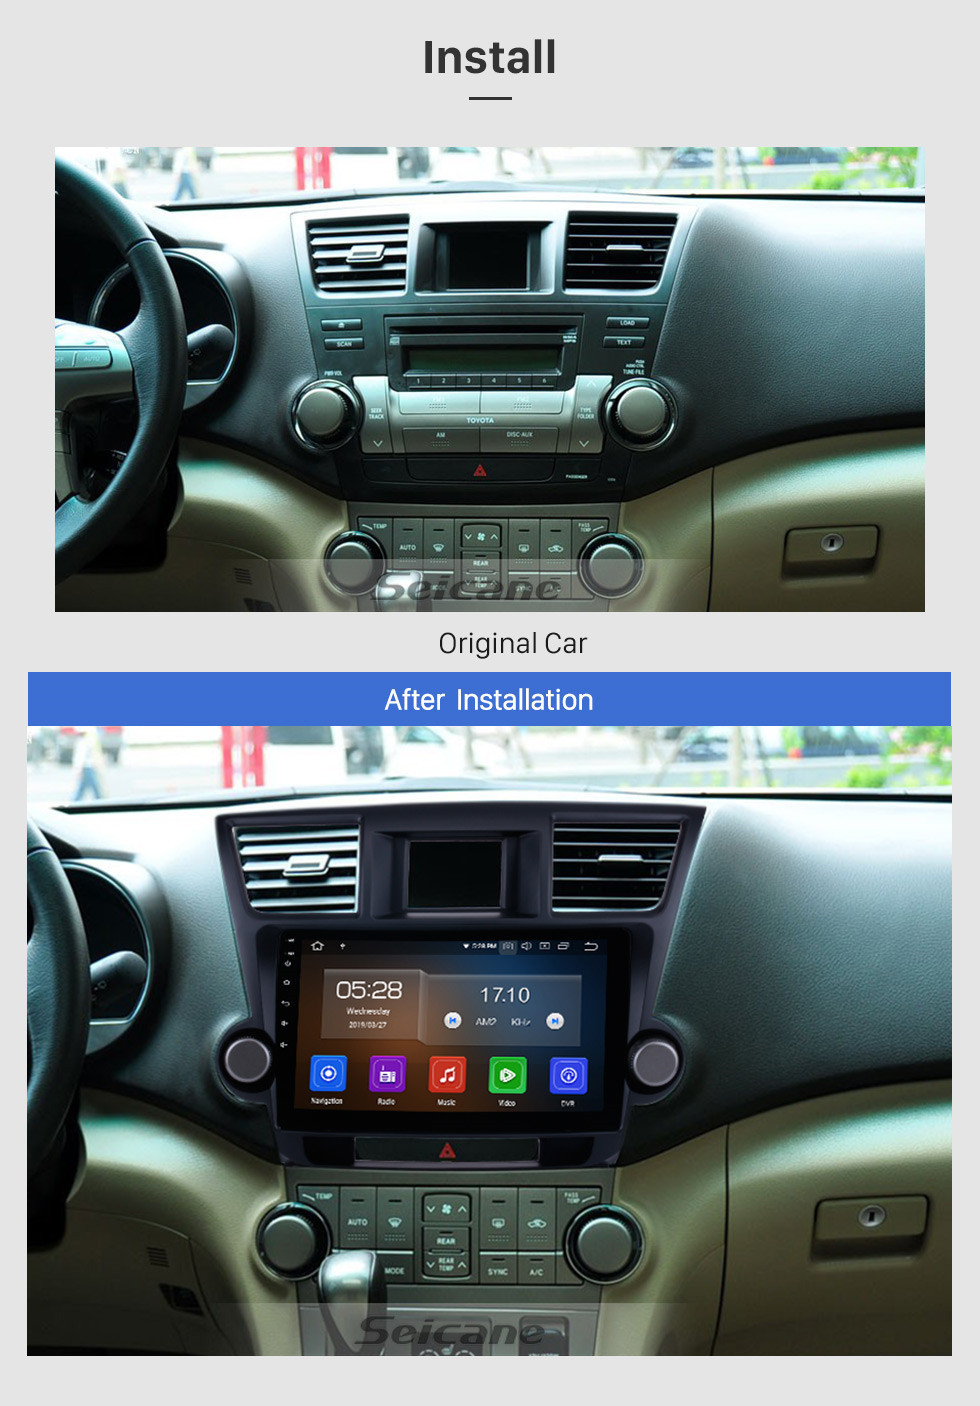 Seicane 10.1 inch Android 10.0 Sat Nav In Car GPS System 2009-2014 Toyota Highlander with 3G WiFi AM FM Radio Bluetooth Music Mirror Link OBD2 Backup Camera DVR